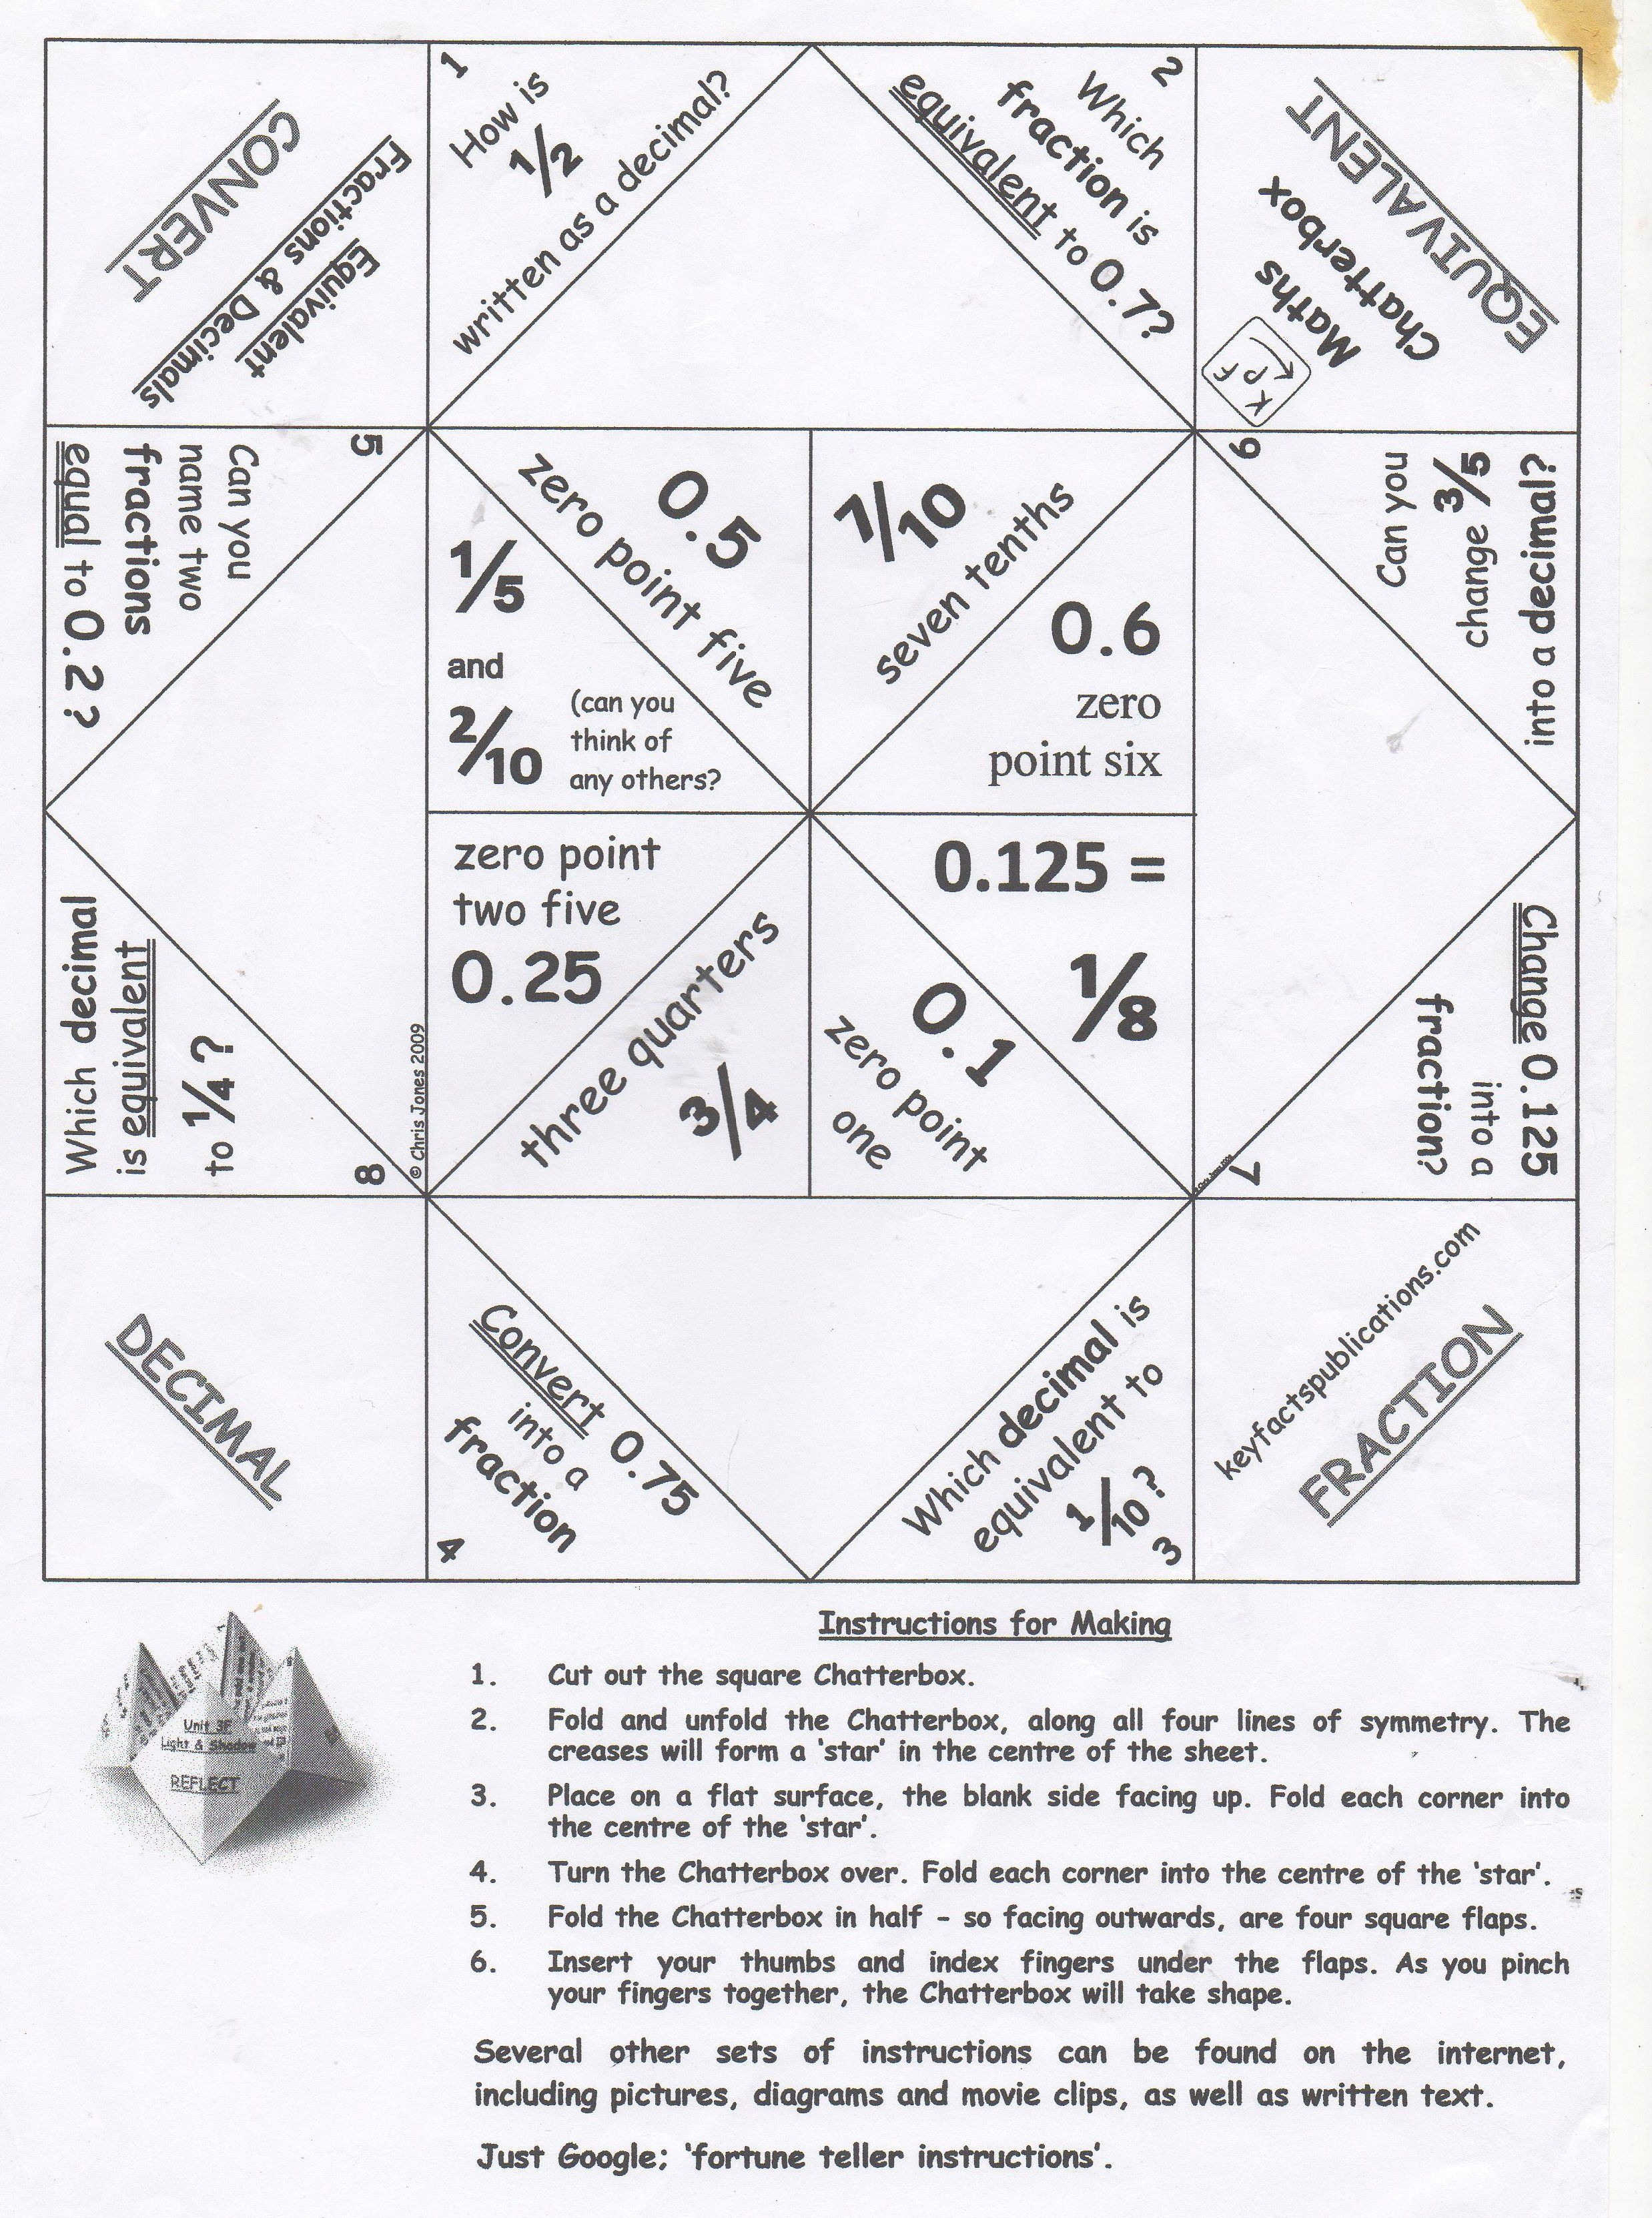 Chatterbox Fortune Teller For Fractions To Decimals